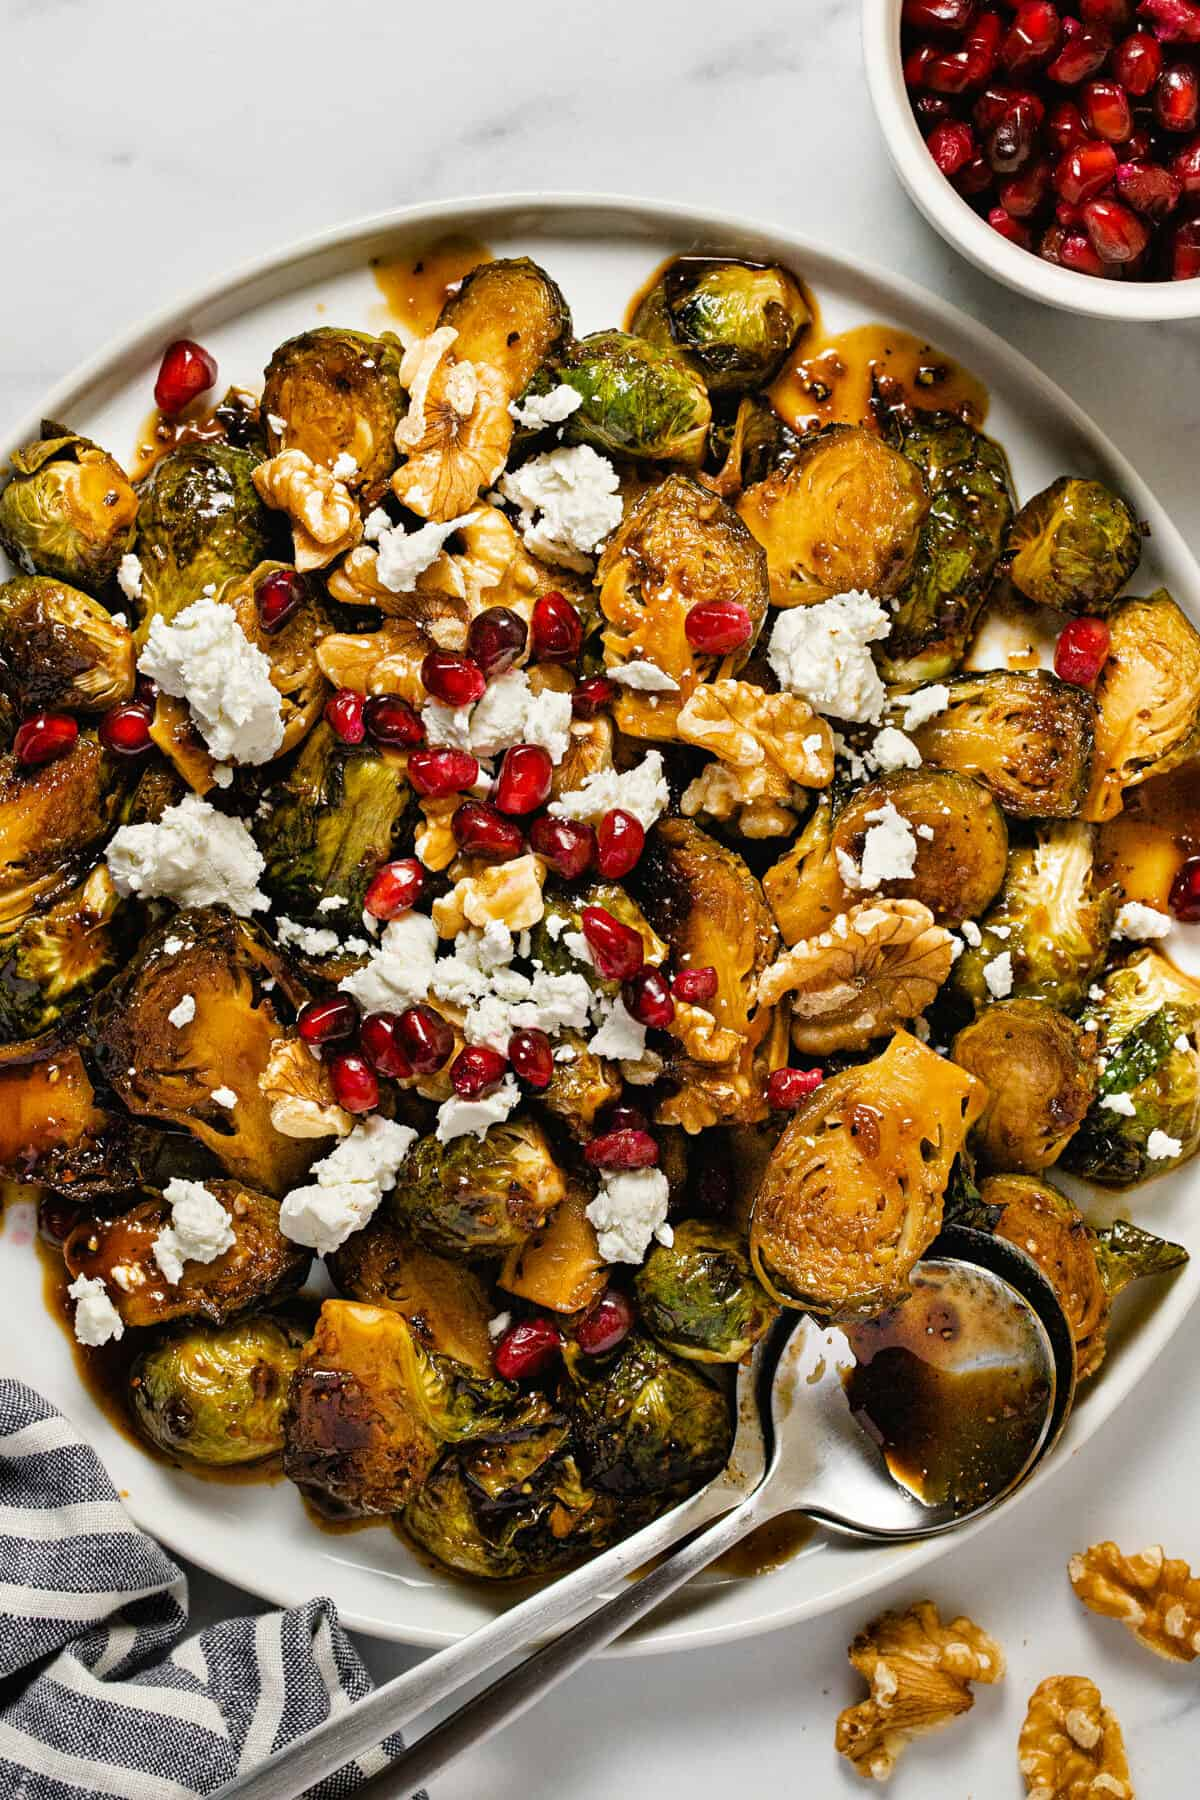 Overhead shot of balsamic glazed Brussel sprouts topped with goat cheese pomegranate seeds and walnuts